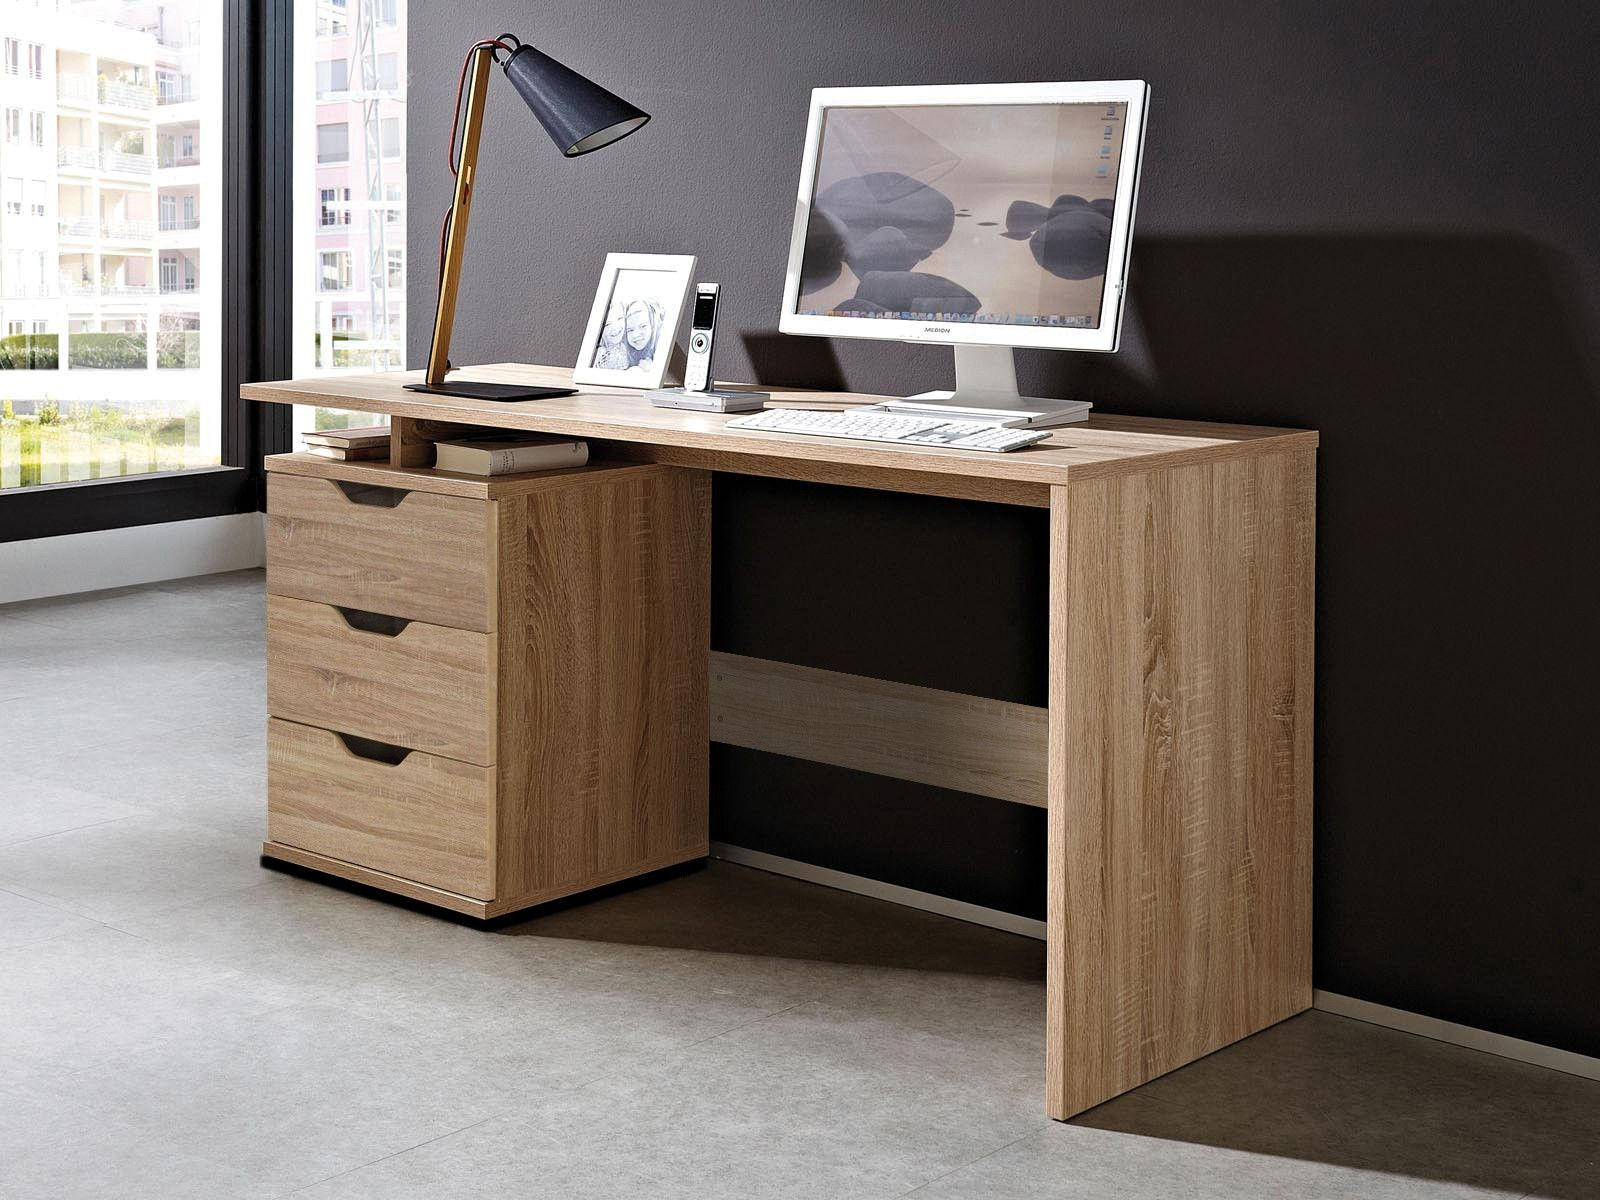 Pin By Noreddine Ben El Kardadi On Bureaux With Images Modern Home Office Furniture Desk With Drawers Desk